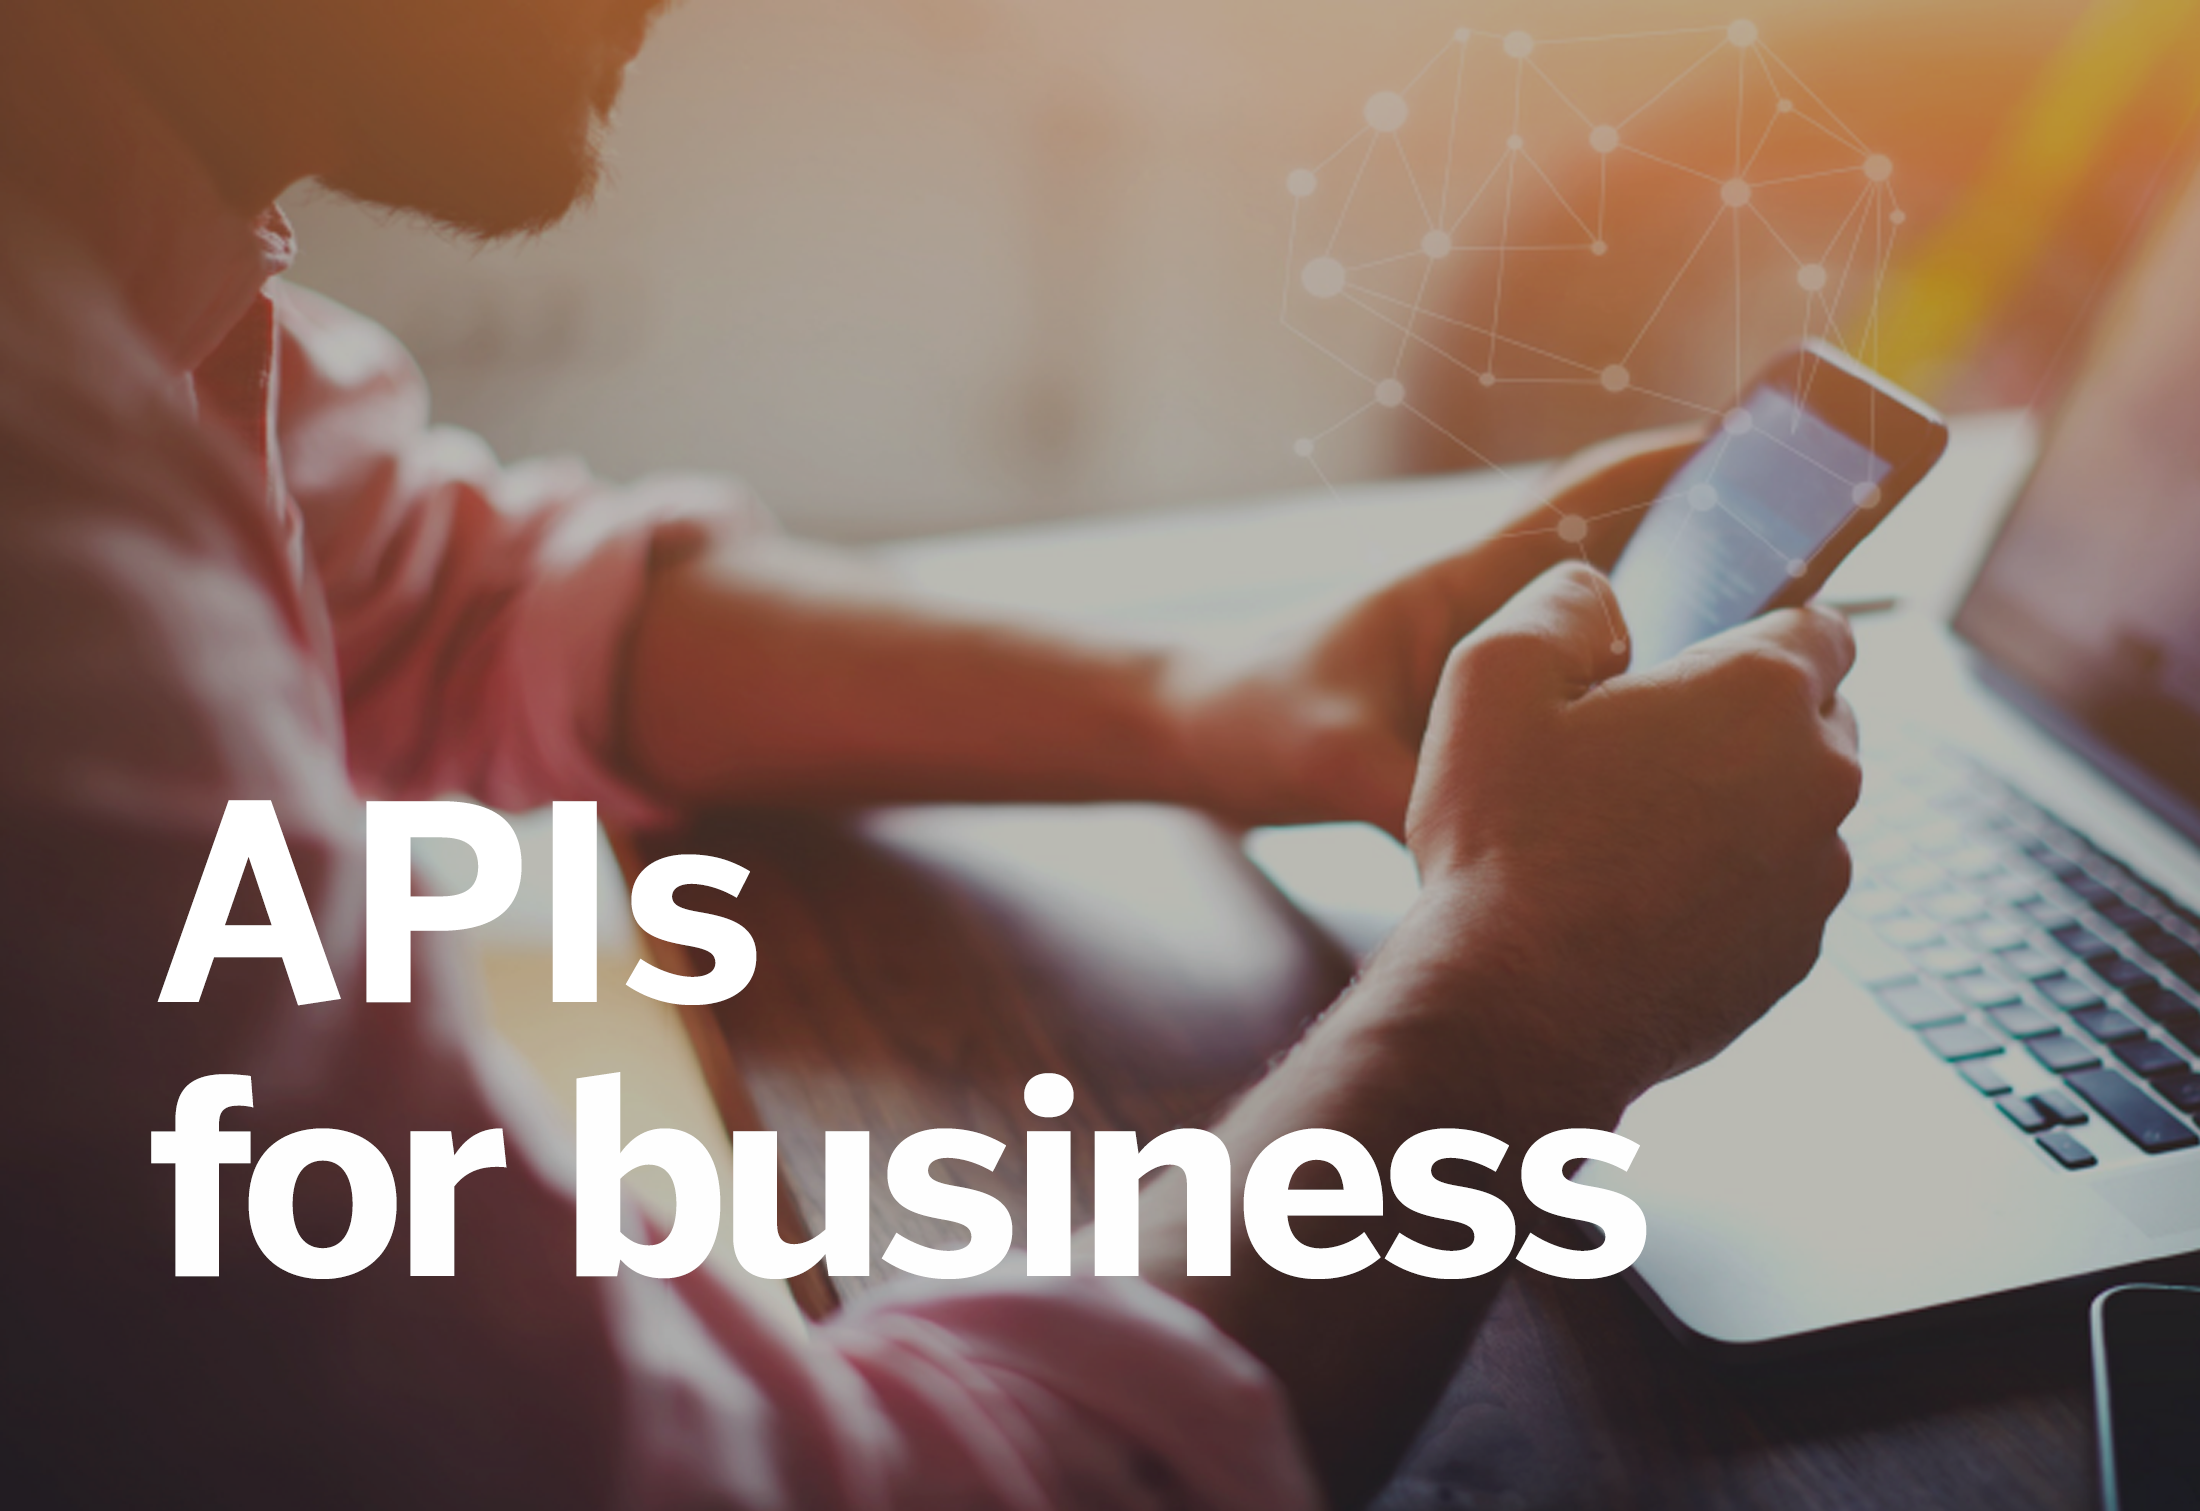 APIs for business